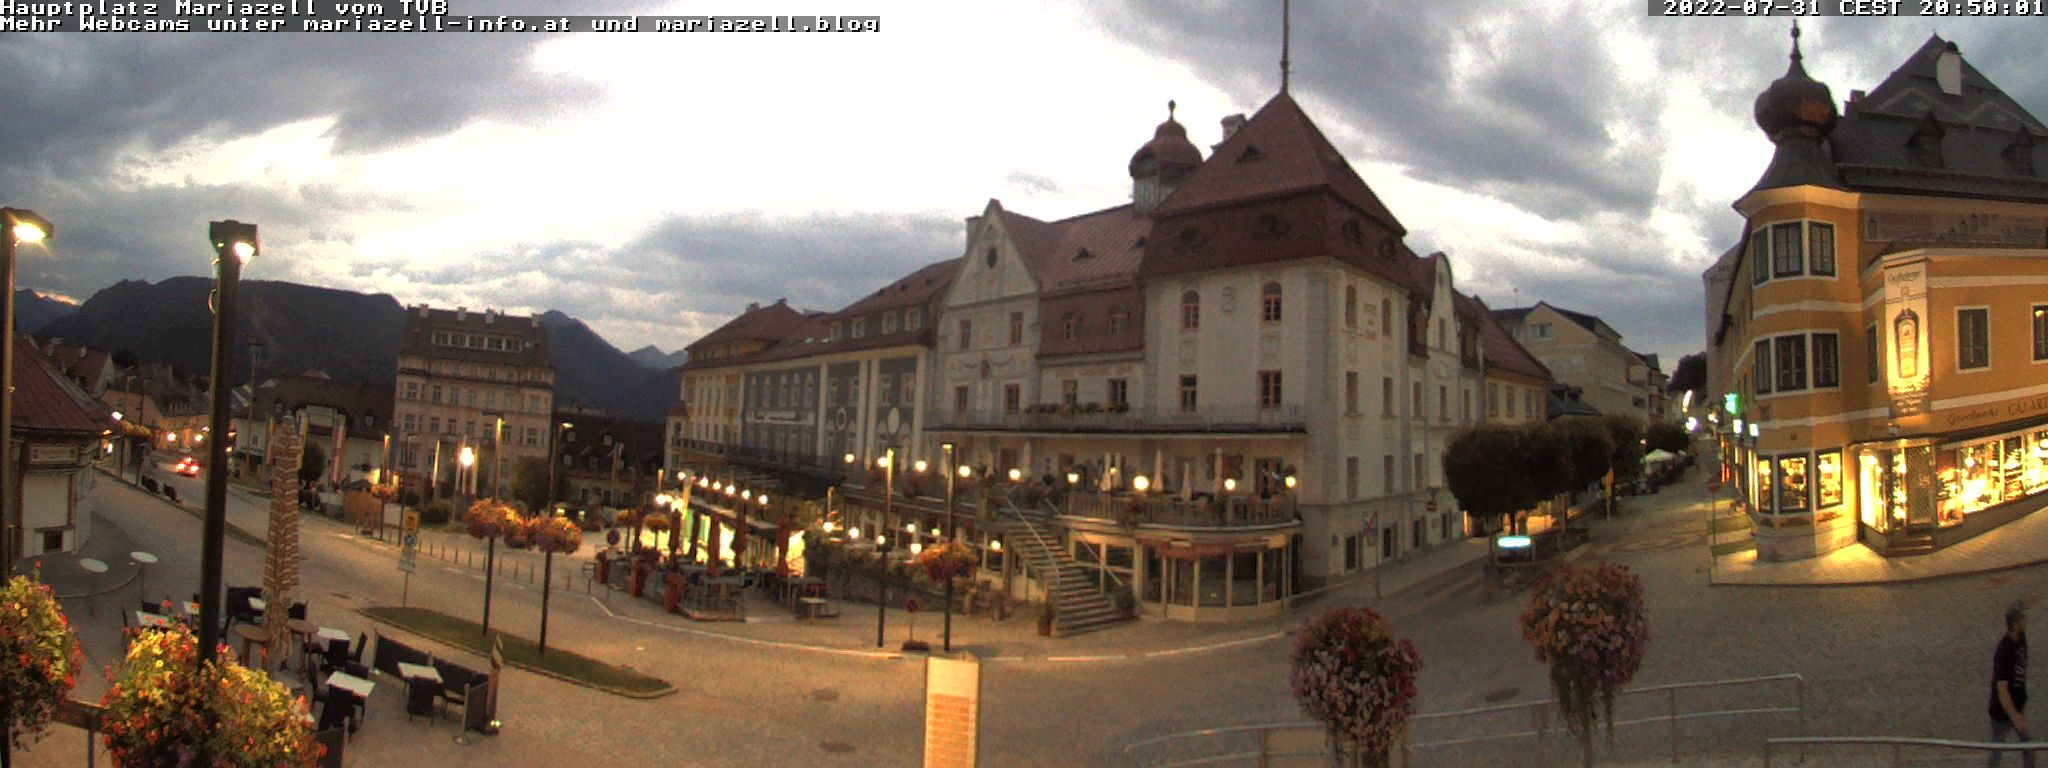 Mariazell Webcam - © Mariazellerland Blog